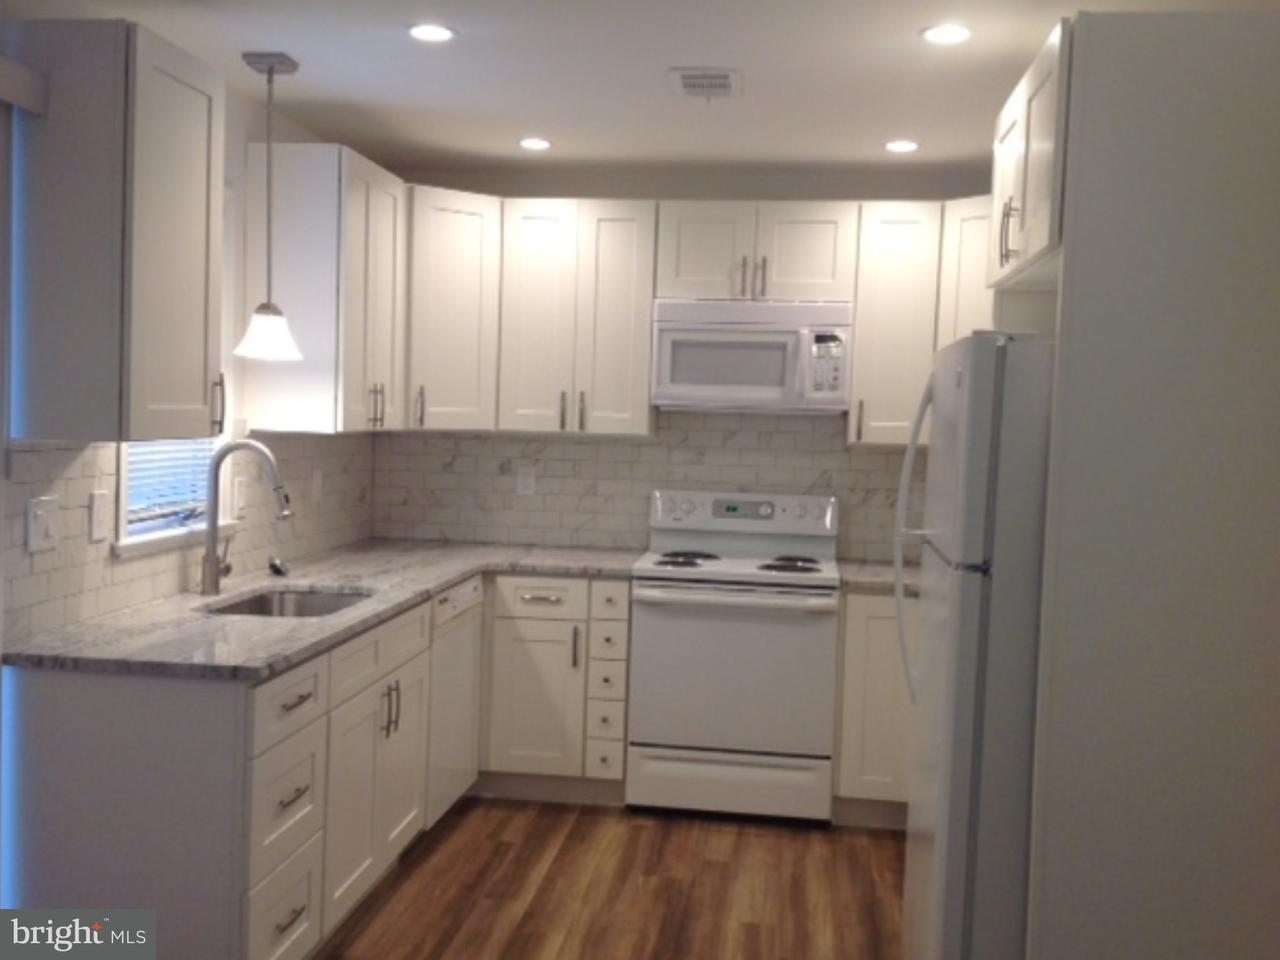 Townhouse for Rent at 12 SHIRLEY LN #K Lawrenceville, New Jersey 08648 United StatesMunicipality: Lawrence Township